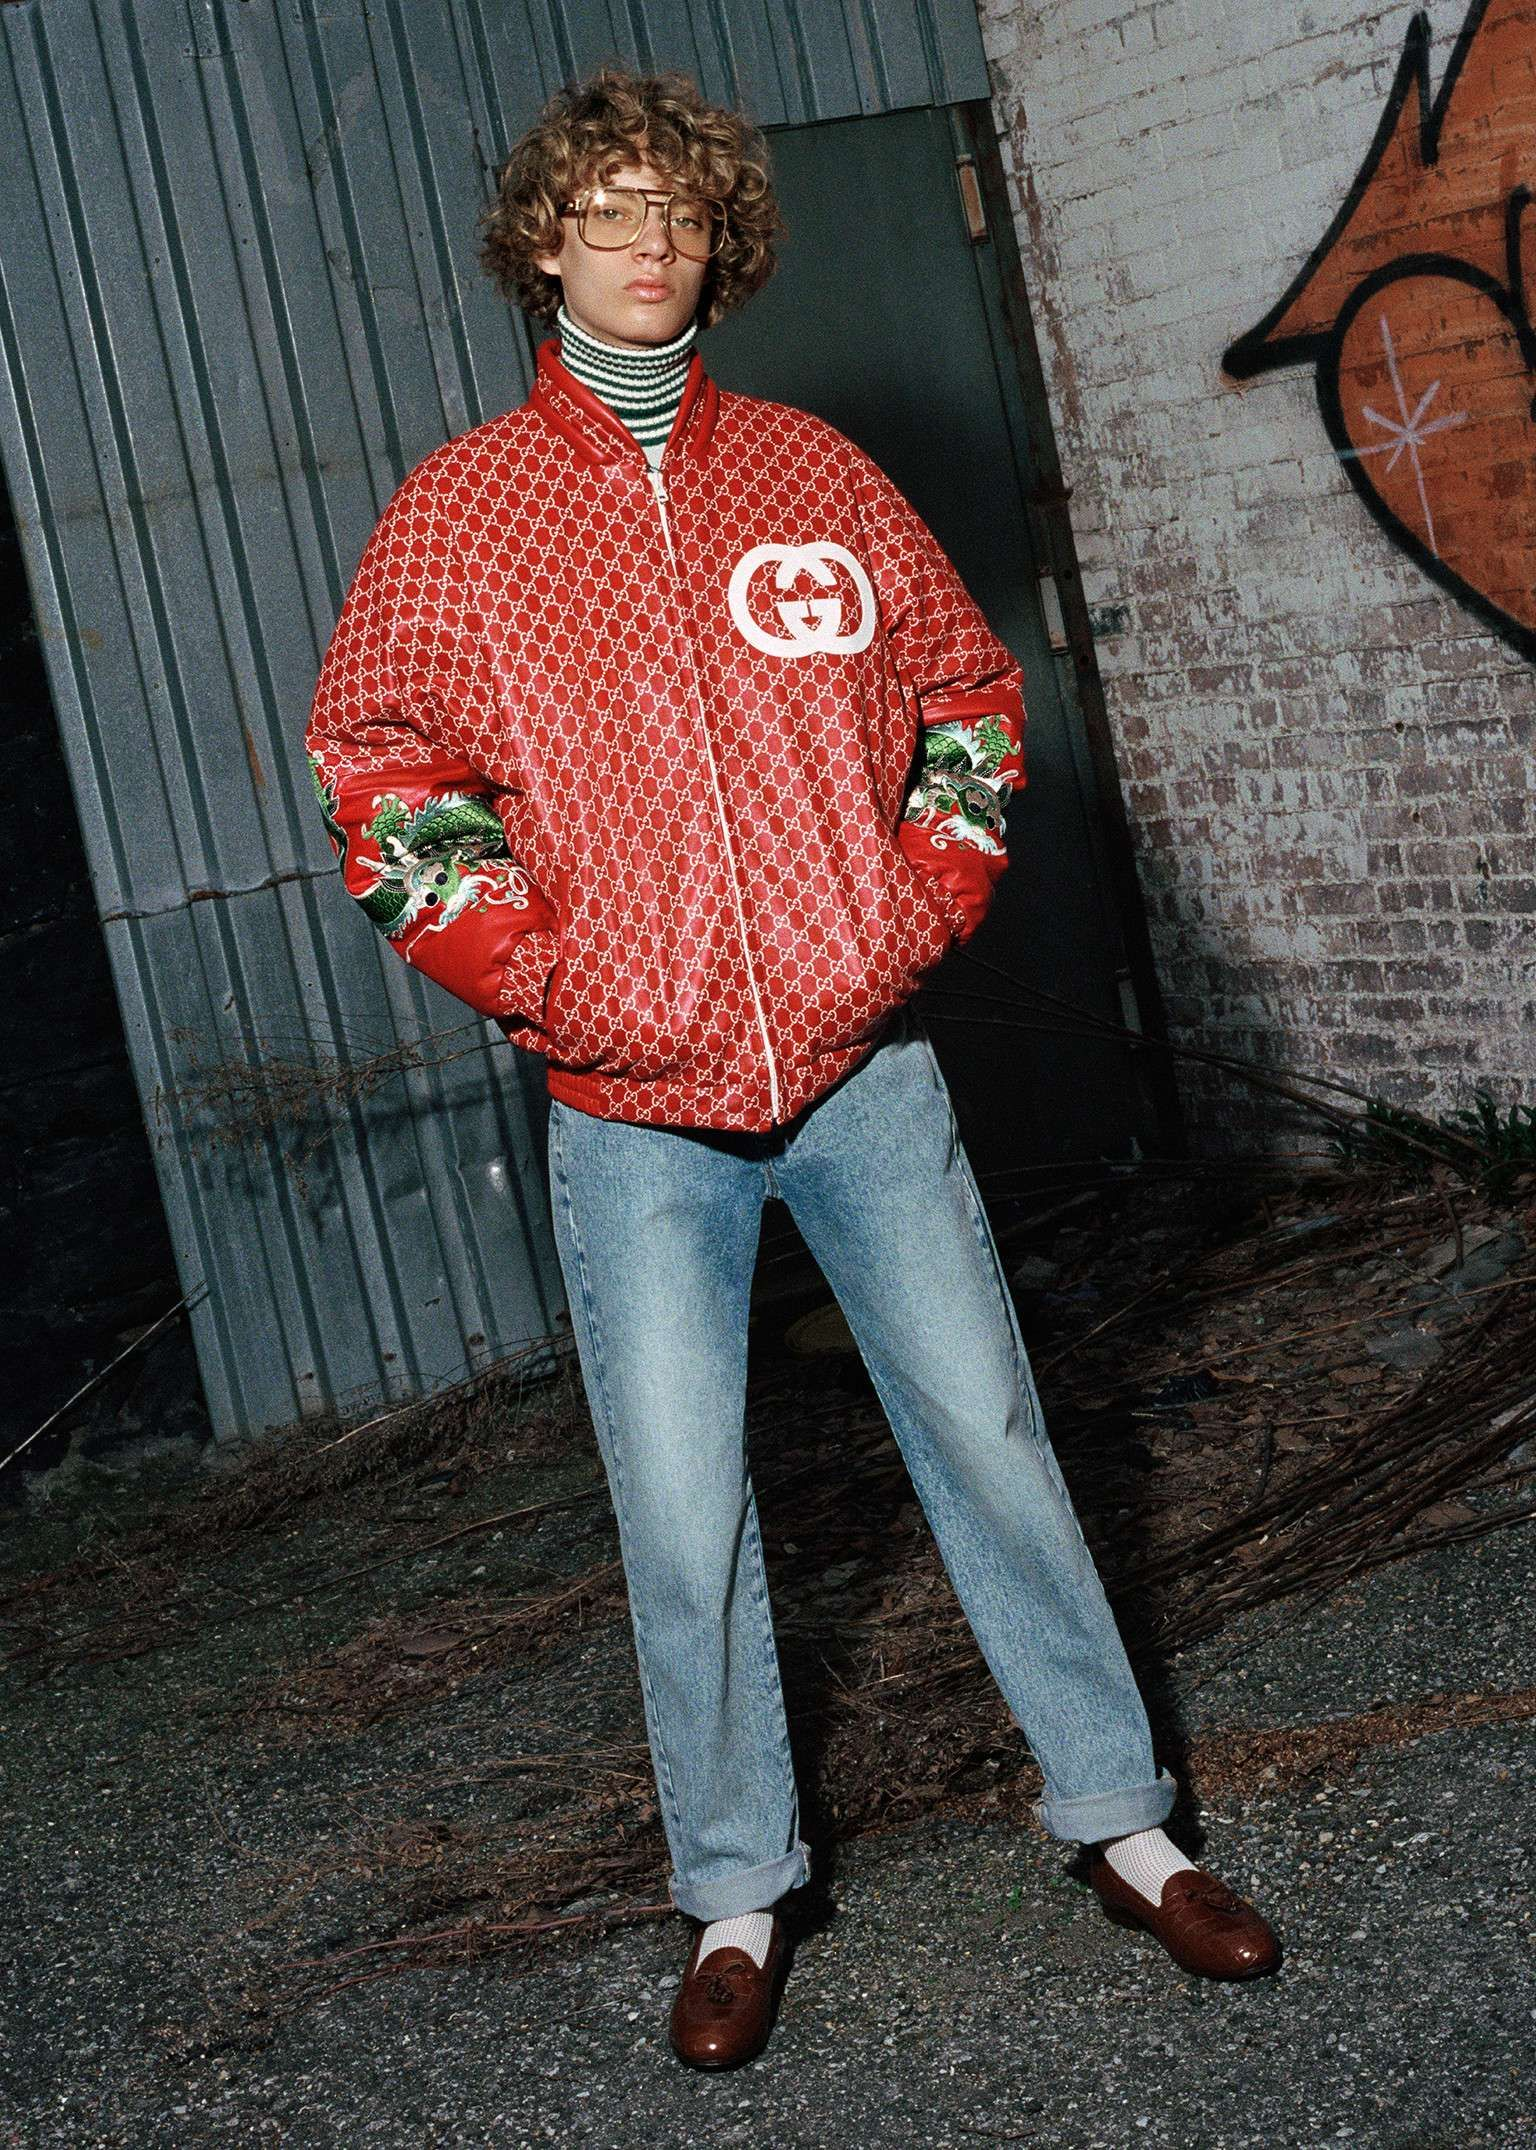 422d0d3ef Gucci-Dapper Dan: a special collaboration between the House and the Harlem  designer.